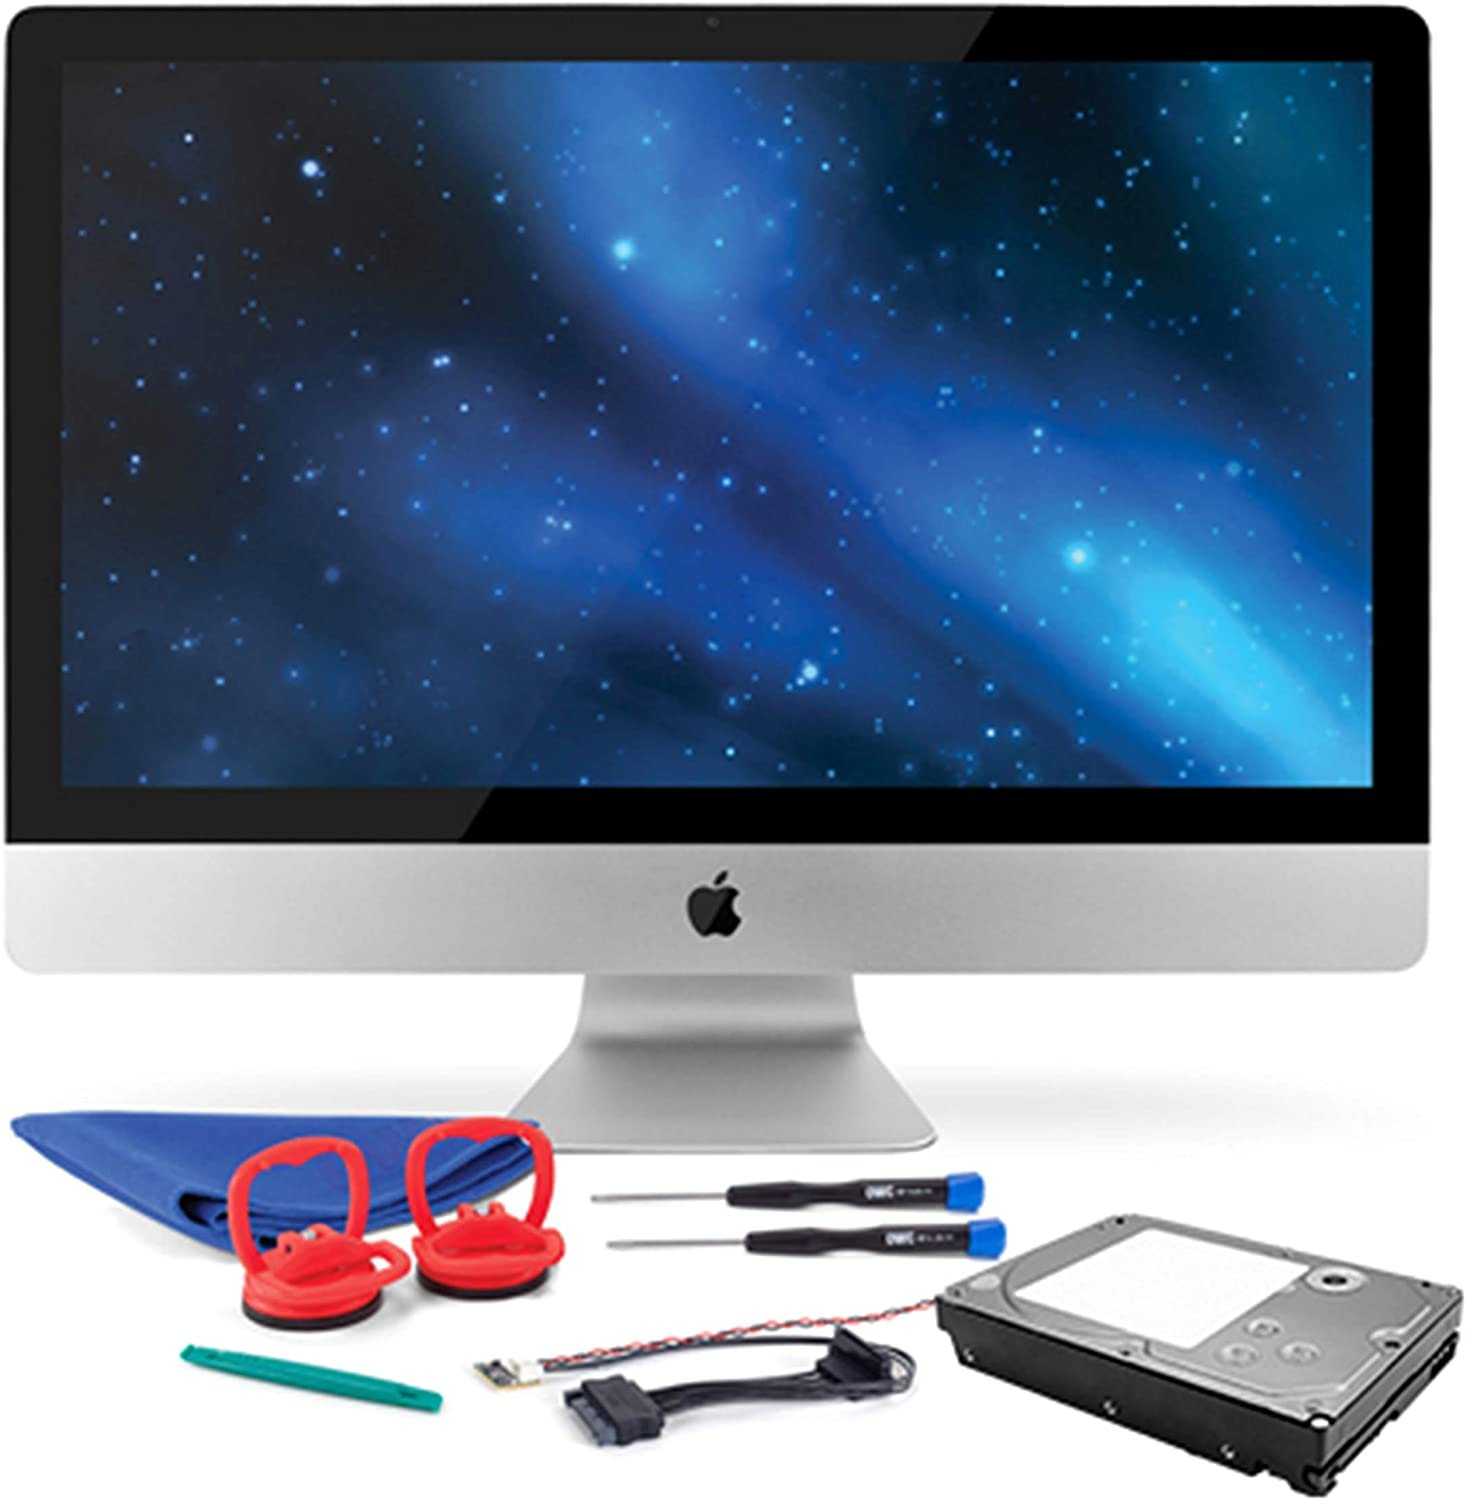 OWC 2.0TB HDD Upgrade Kit Compatible With 2009-2010 iMacs, Includes: Thermal Sensor, Tools, 2.0TB Hard Drive